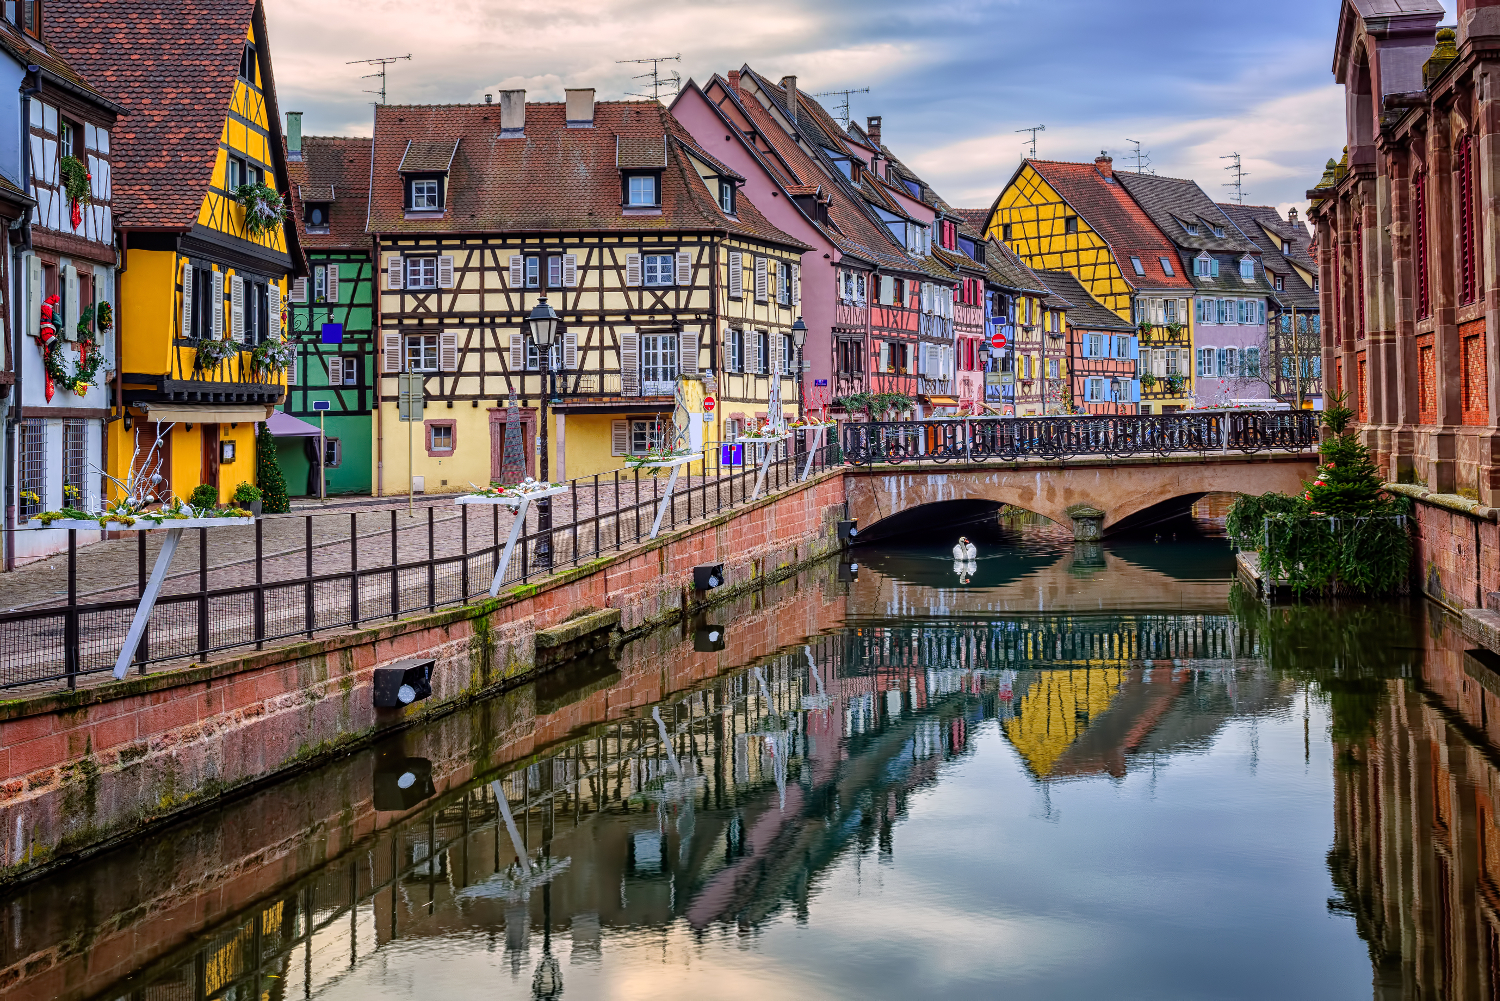 Colmar - Colorful medieval half-timbered facades reflecting in water, #France, #travel #best #photos and #places